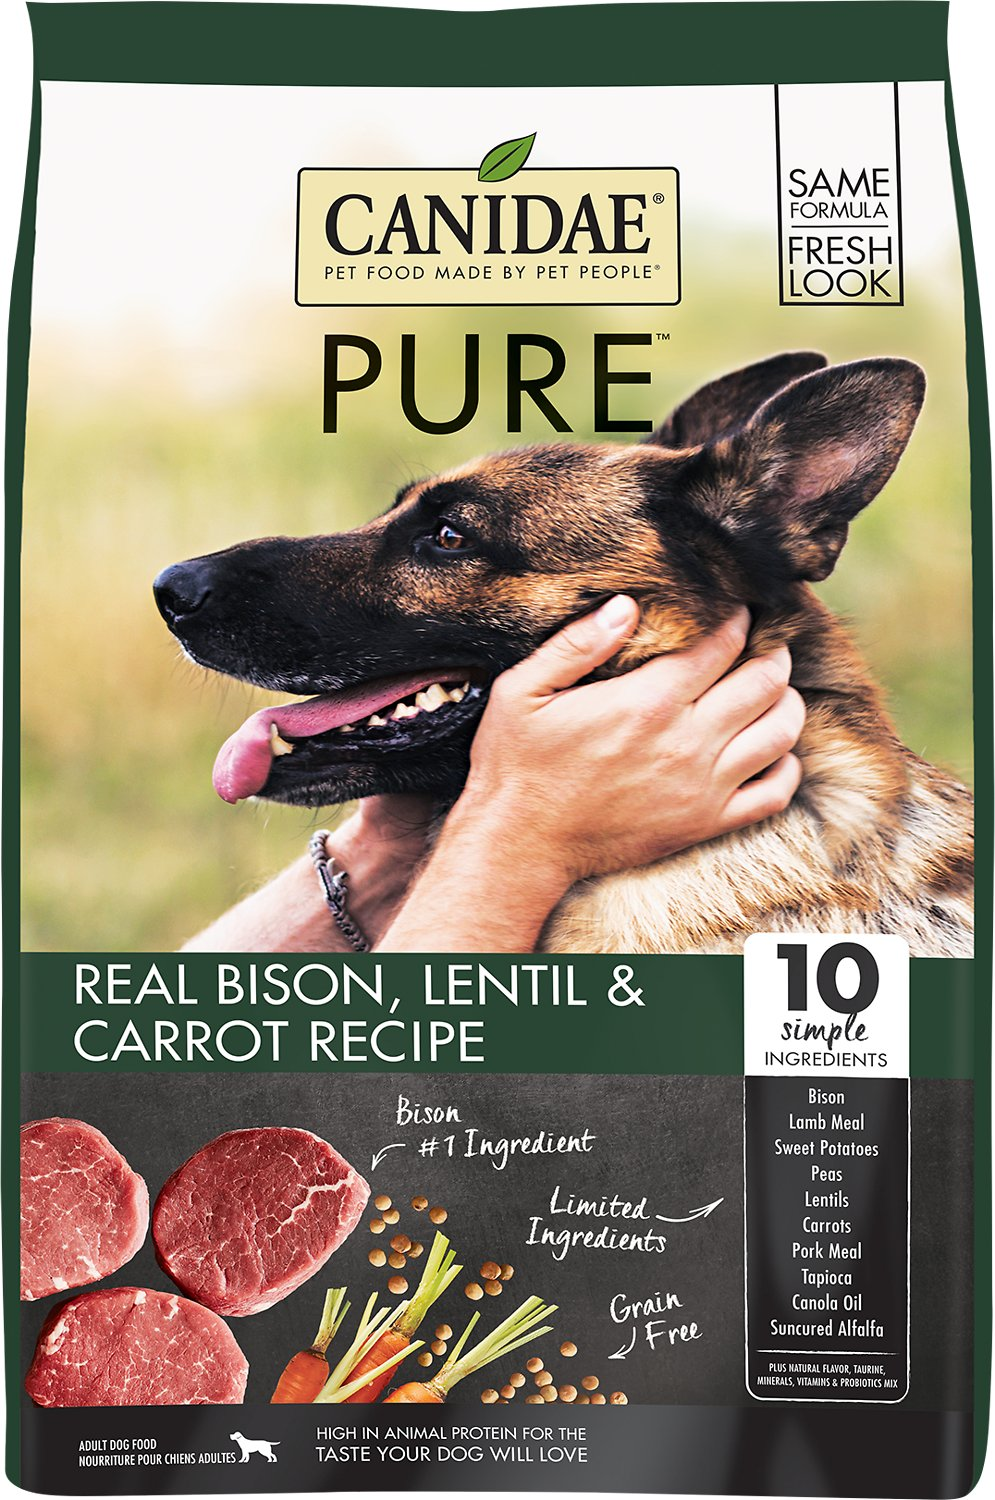 CANIDAE Grain-Free PURE Real Bison, Lentil & Carrot Recipe Dry Dog Food